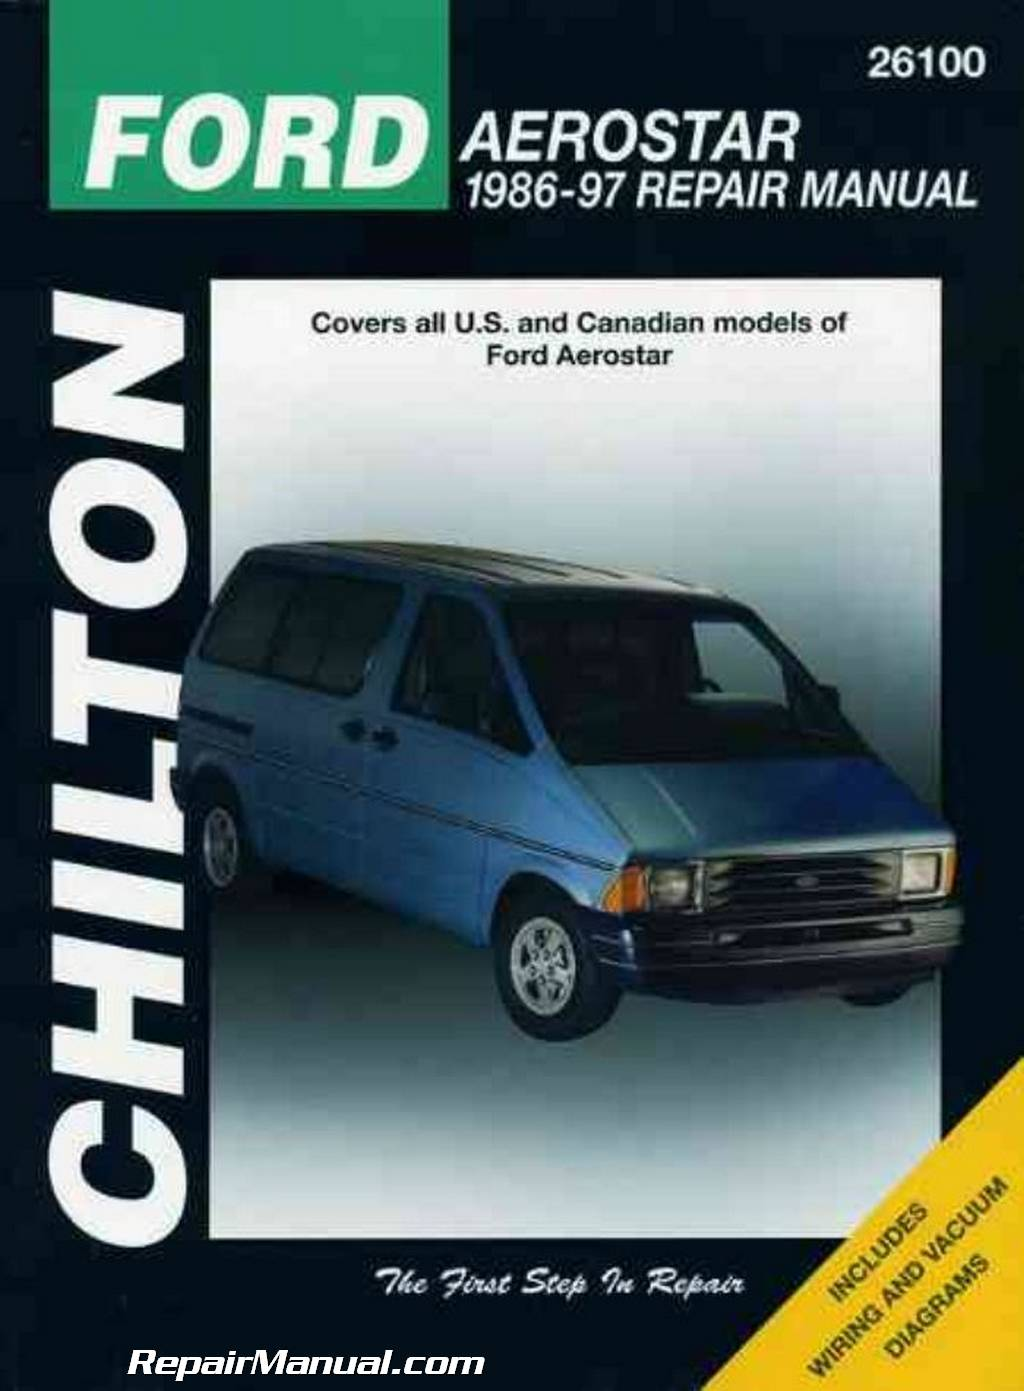 chilton ford aerostar 1986 1997 repair manual rh repairmanual com 1997 Ford  Aerostar Van 1997 Ford Aerostar Van